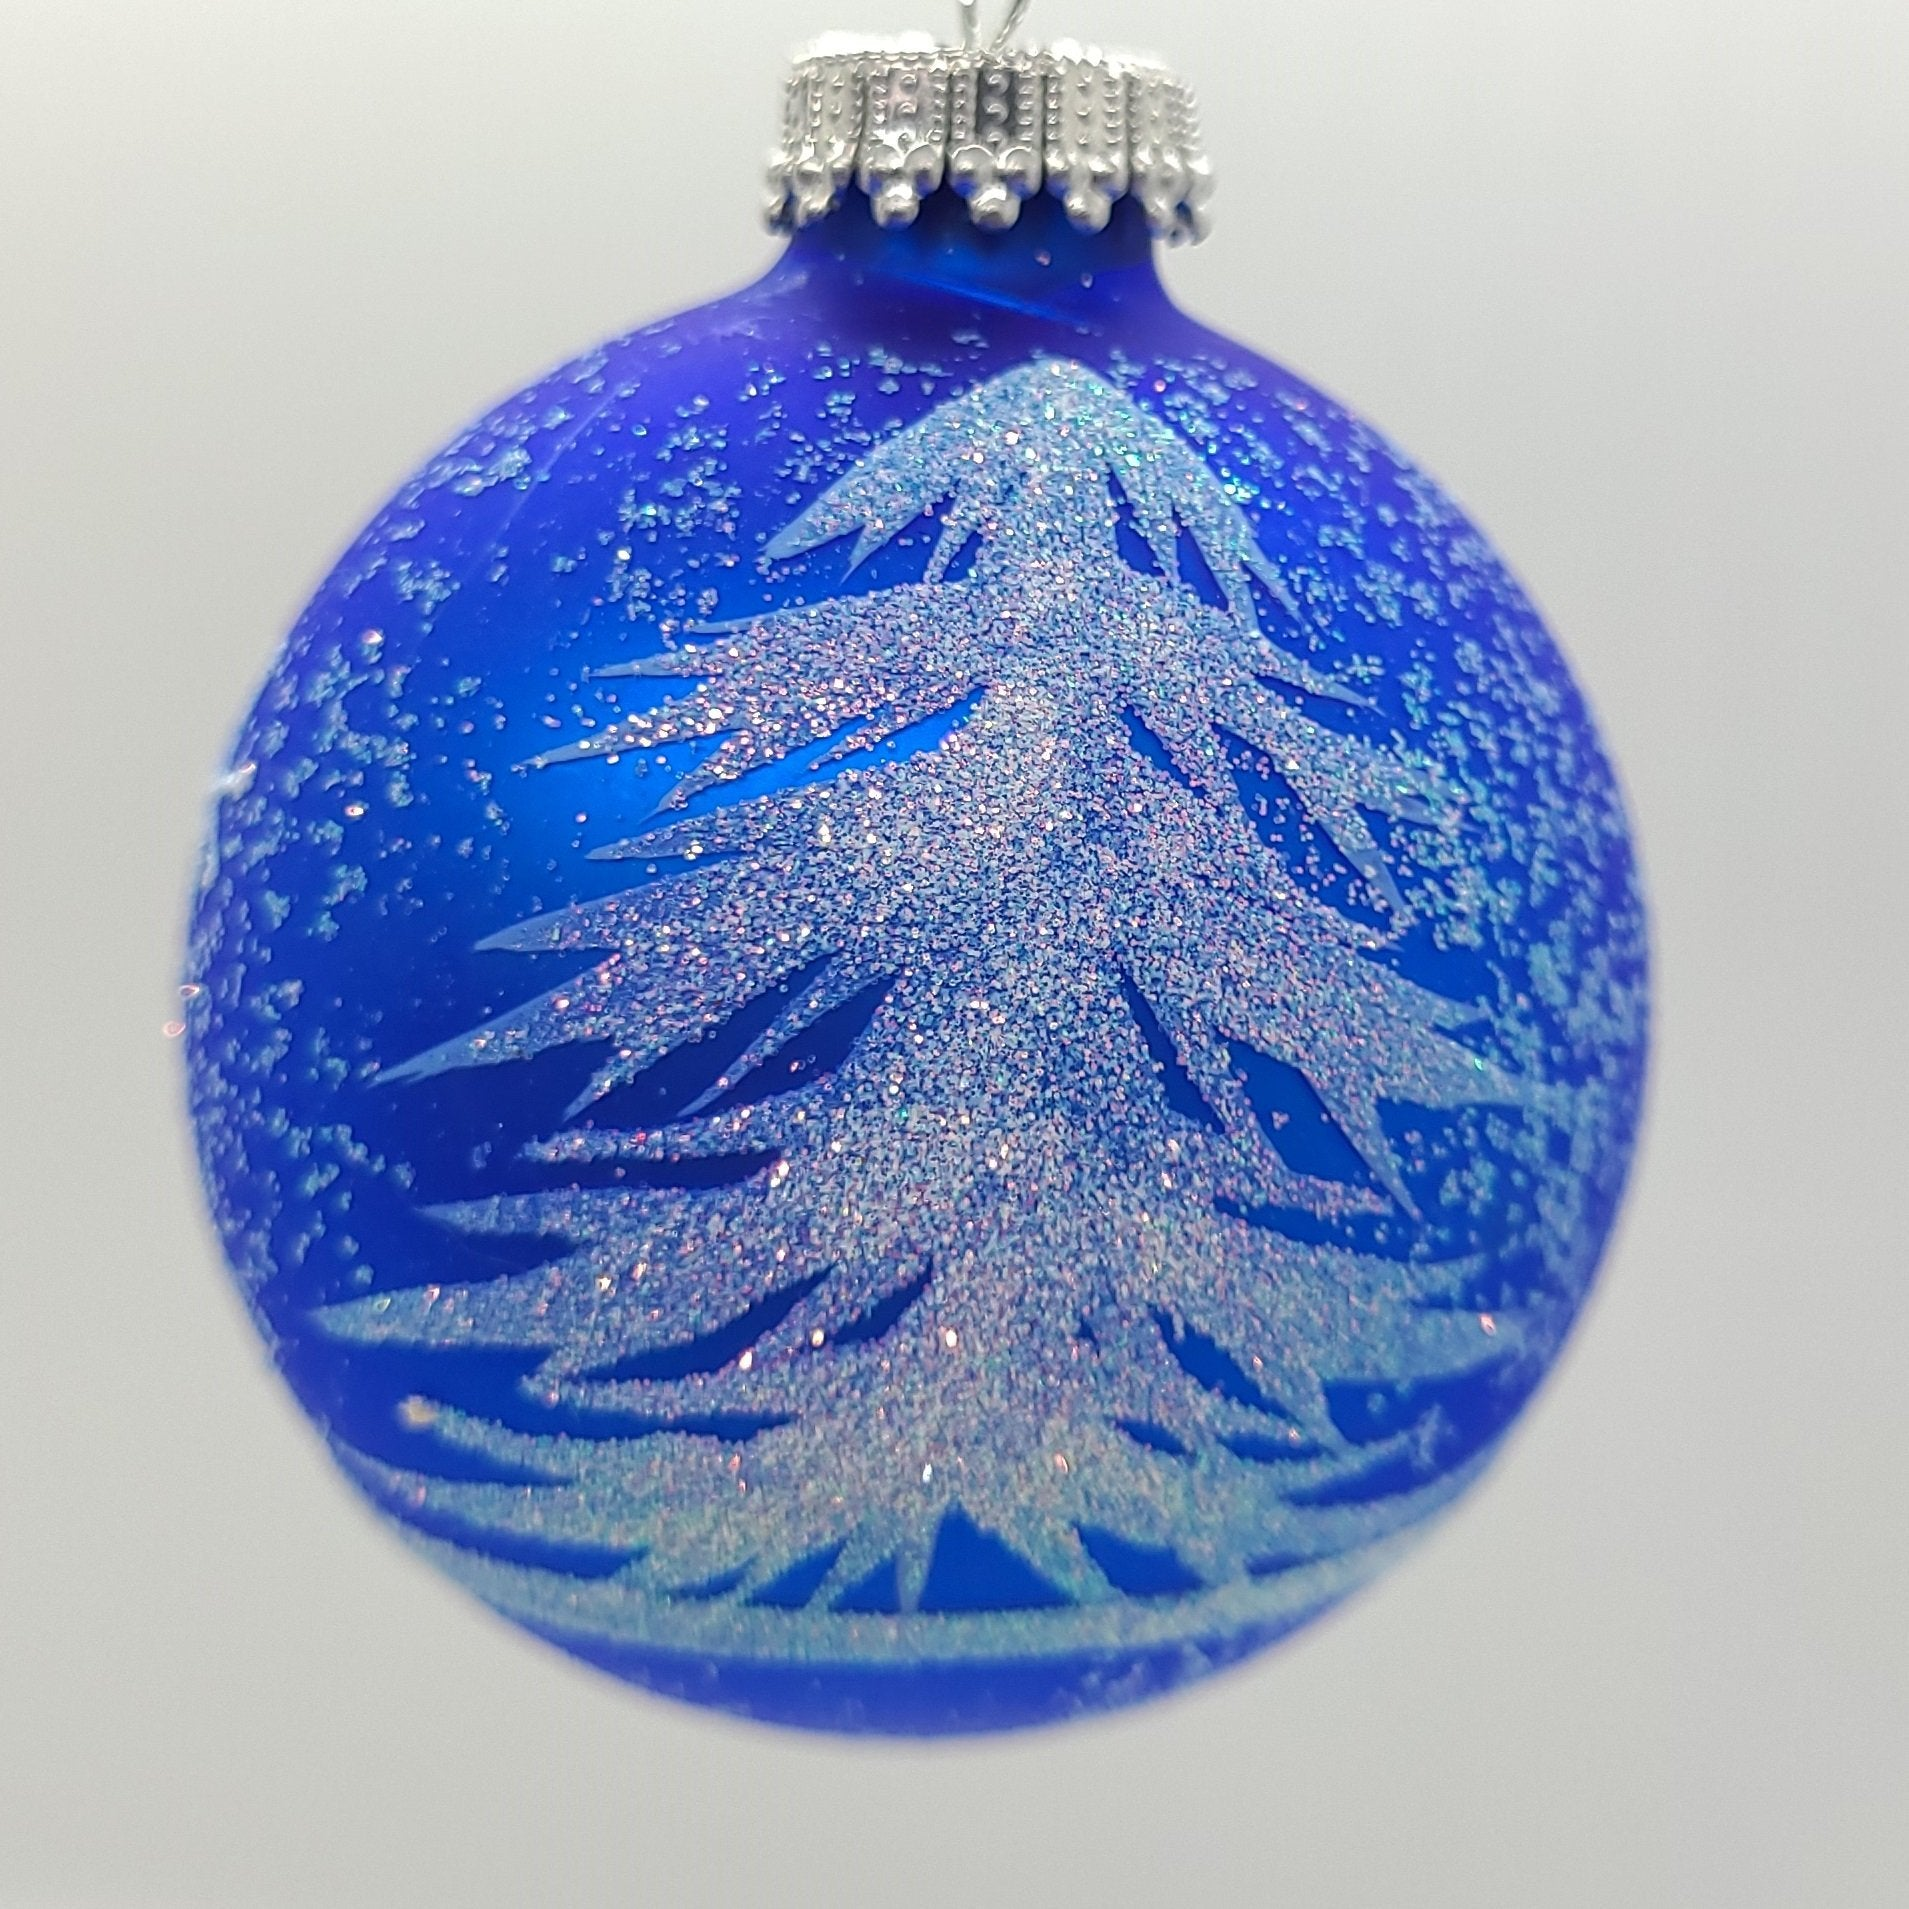 "Frosted Blue Glass 3 ""Bauble Ornament - Schmidt Kersmark Kersversiering"